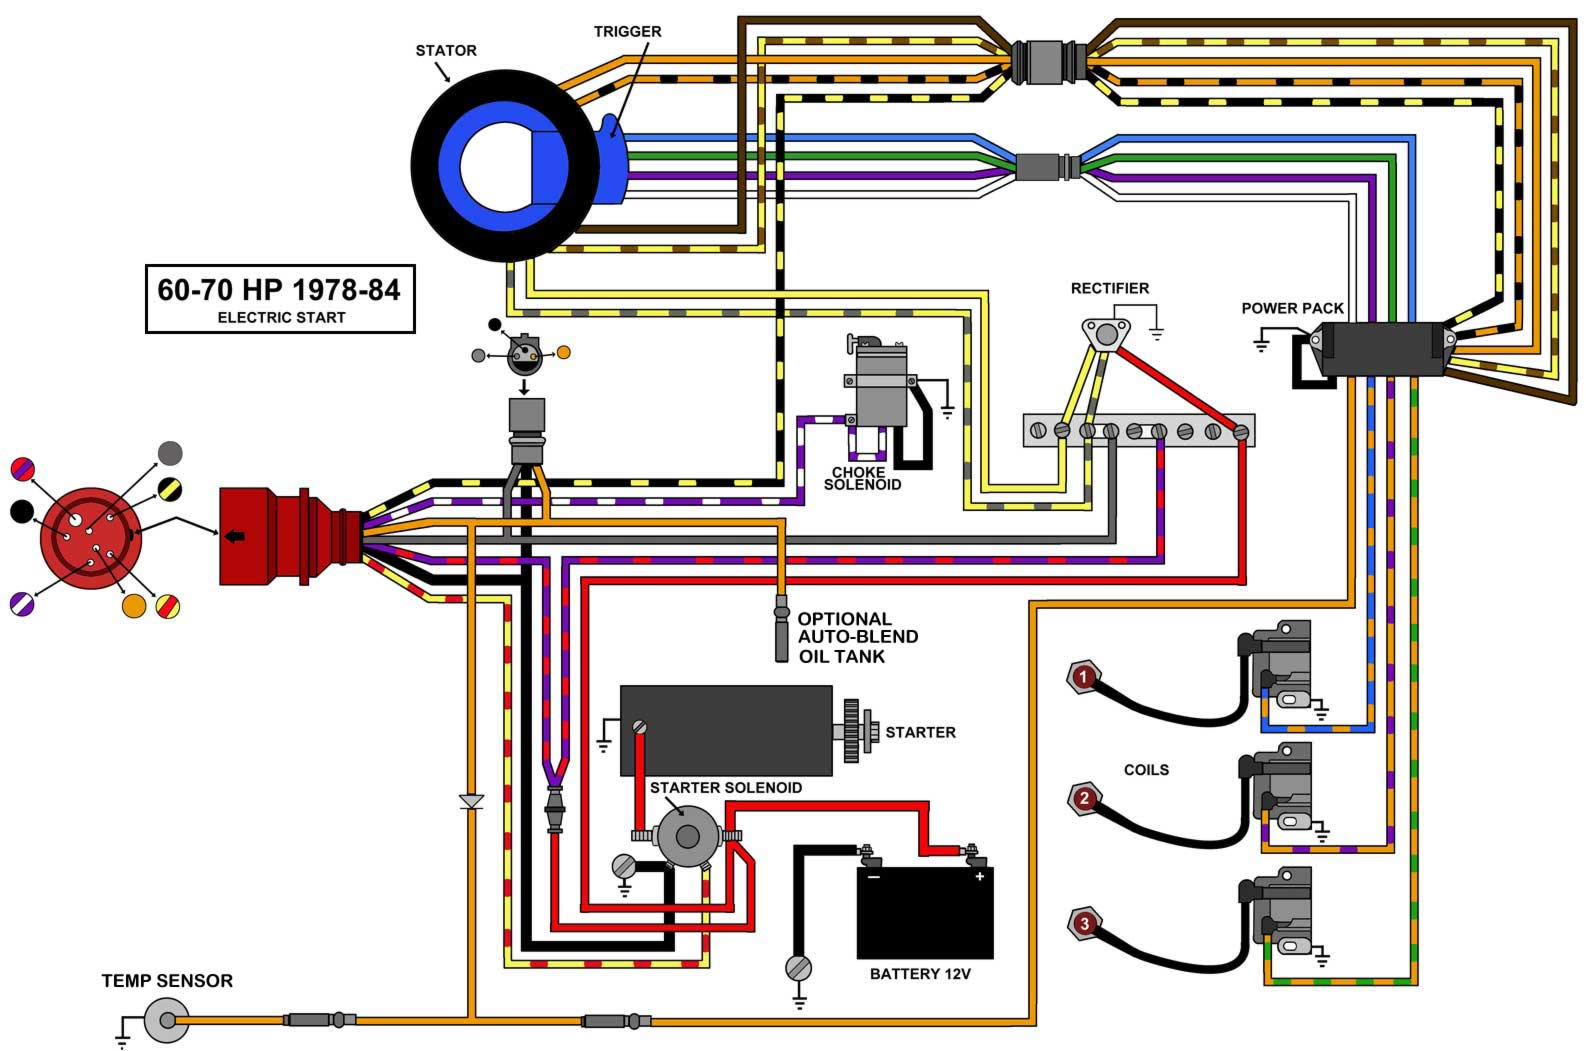 60-70 HP ... EVINRUDE JOHNSON Outboard Wiring Diagrams ...